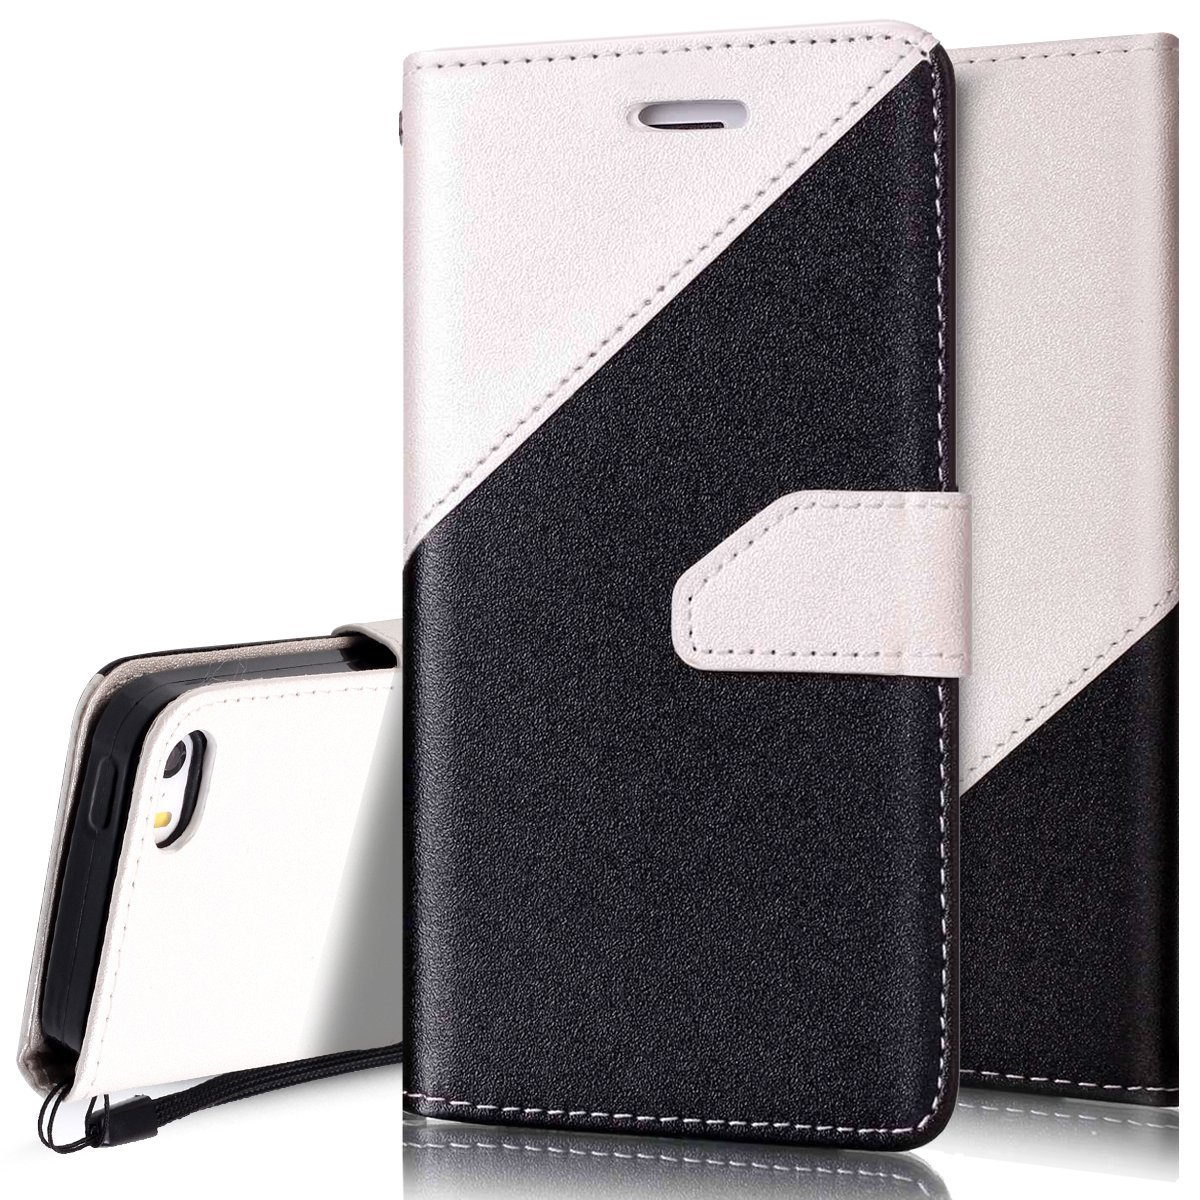 iPhone SE Case,iPhone 5S Case,PHEZEN iPhone 5s/5/SE Wallet Case, Elegant Two-Color Design PU Leather Magnetic Wallet Flip Case Cover with Stand & Credit Card Slots for iPhone 5 5S SE, Black + White